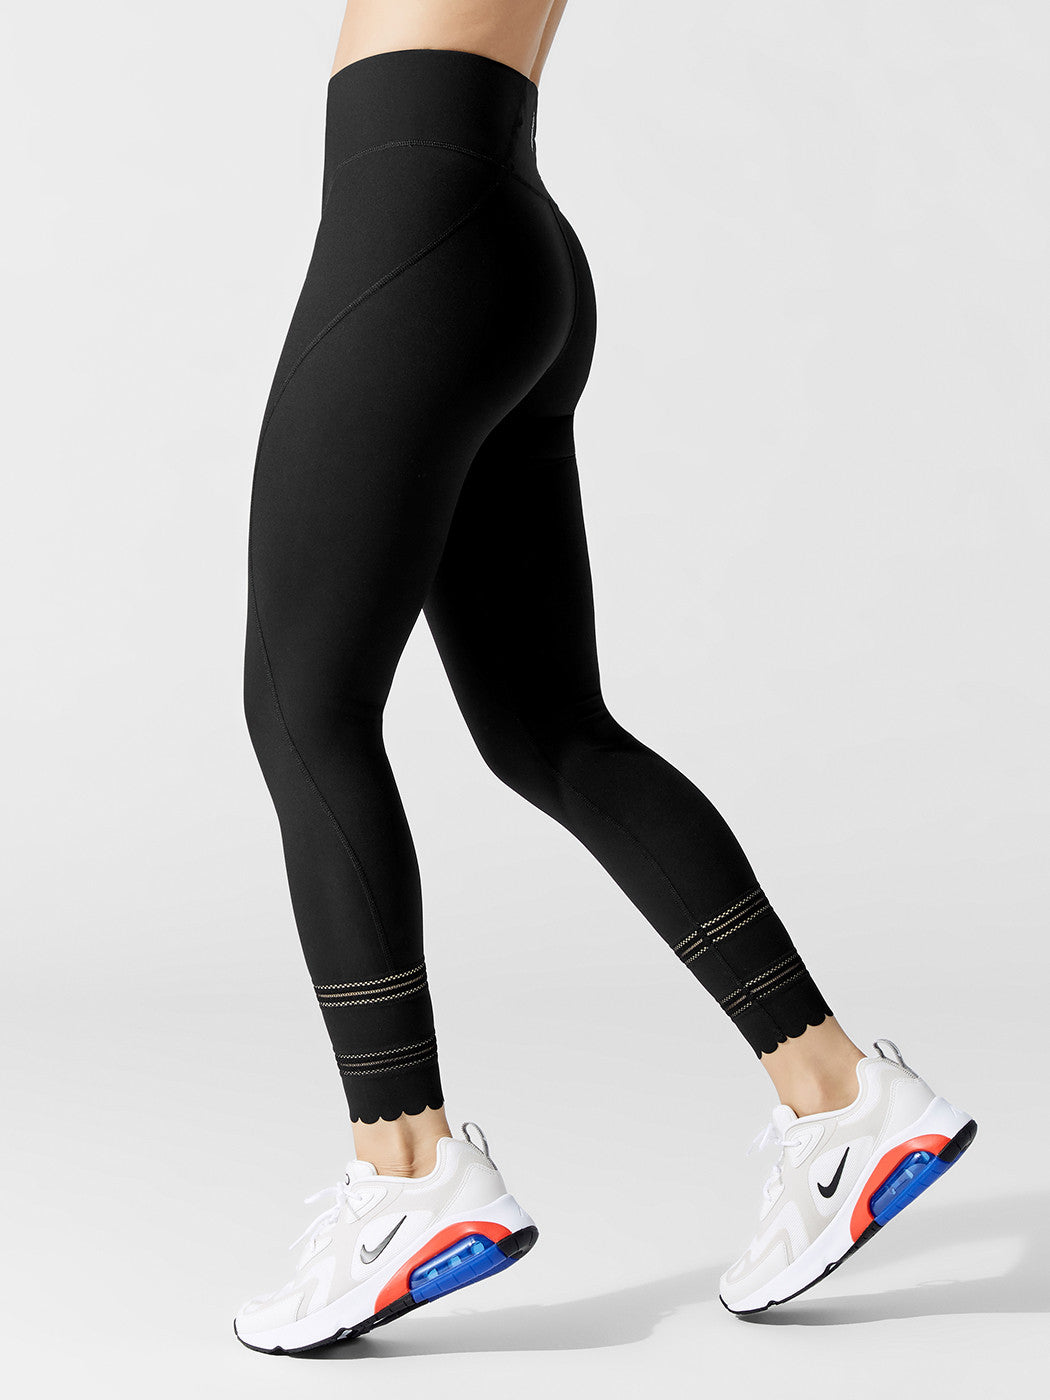 FPM-Genesis Leggings